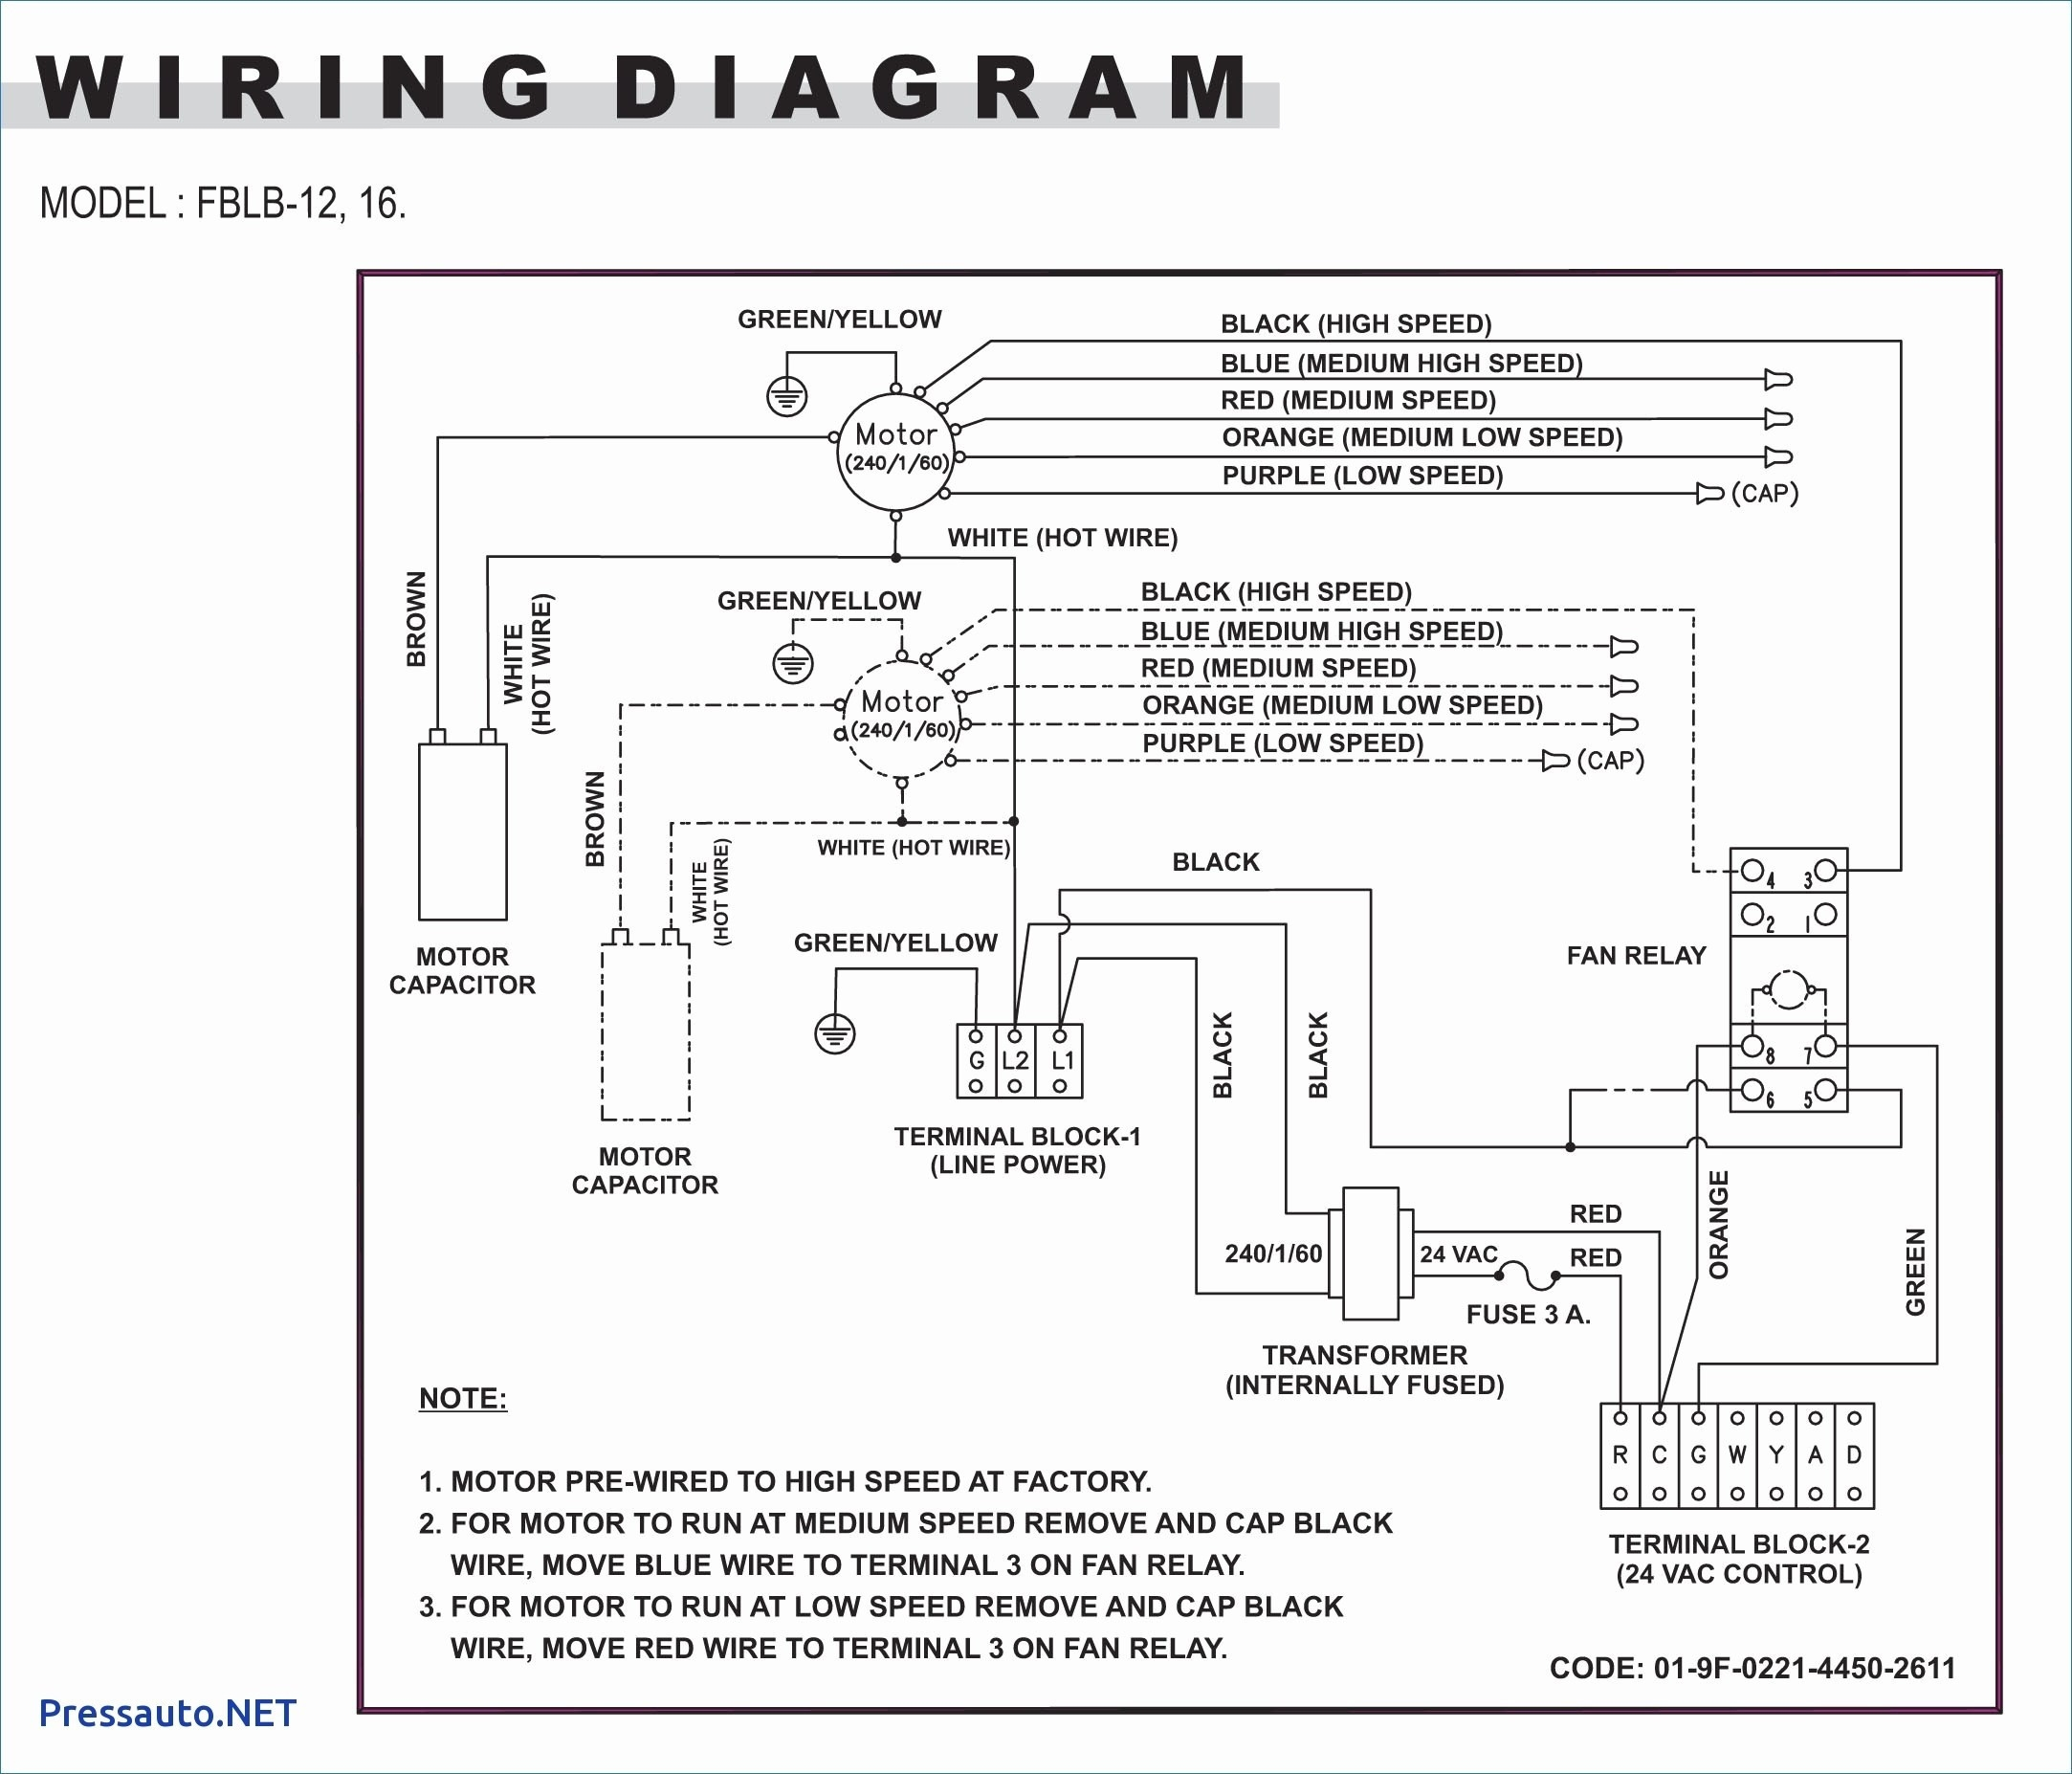 All Pro Heater Wire Diagram - Technical Diagrams Baseboard Heaters Tpi Wiring Diagram on